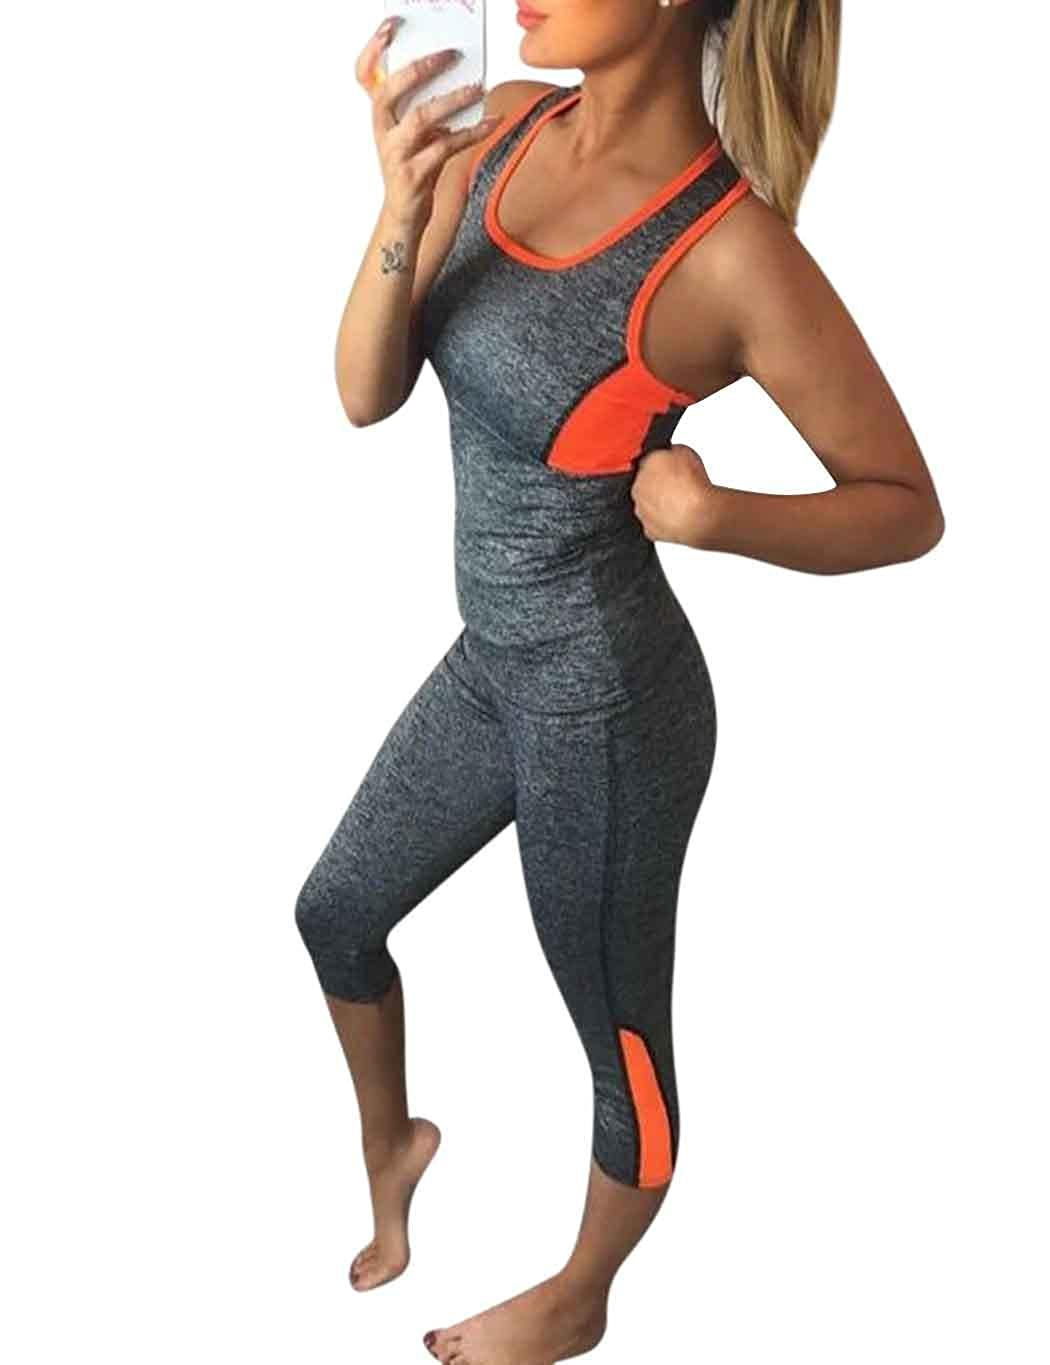 Loveje Womens Activewear Activewear Tops Ladies Activewear Active  Sweatsuits at Amazon Women s Clothing store  b9fcbd831f4f